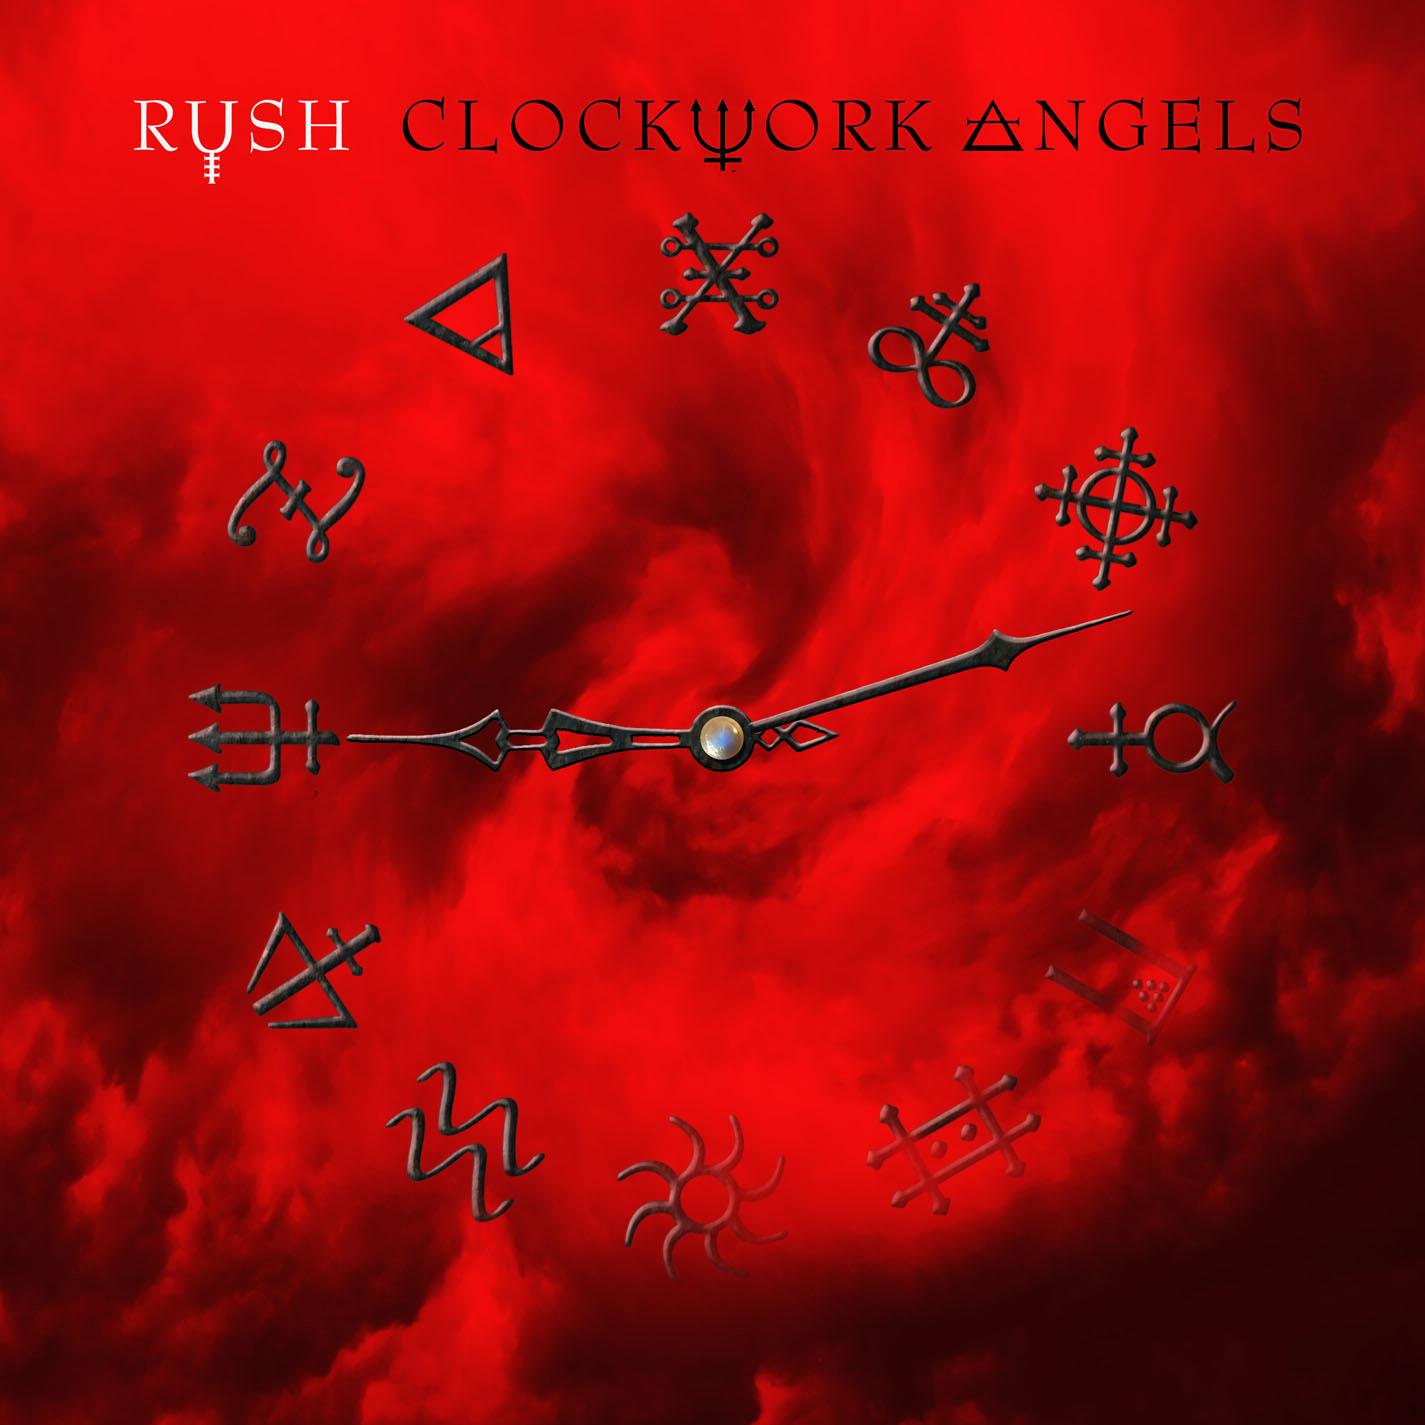 clockwork-angels-cover.jpg